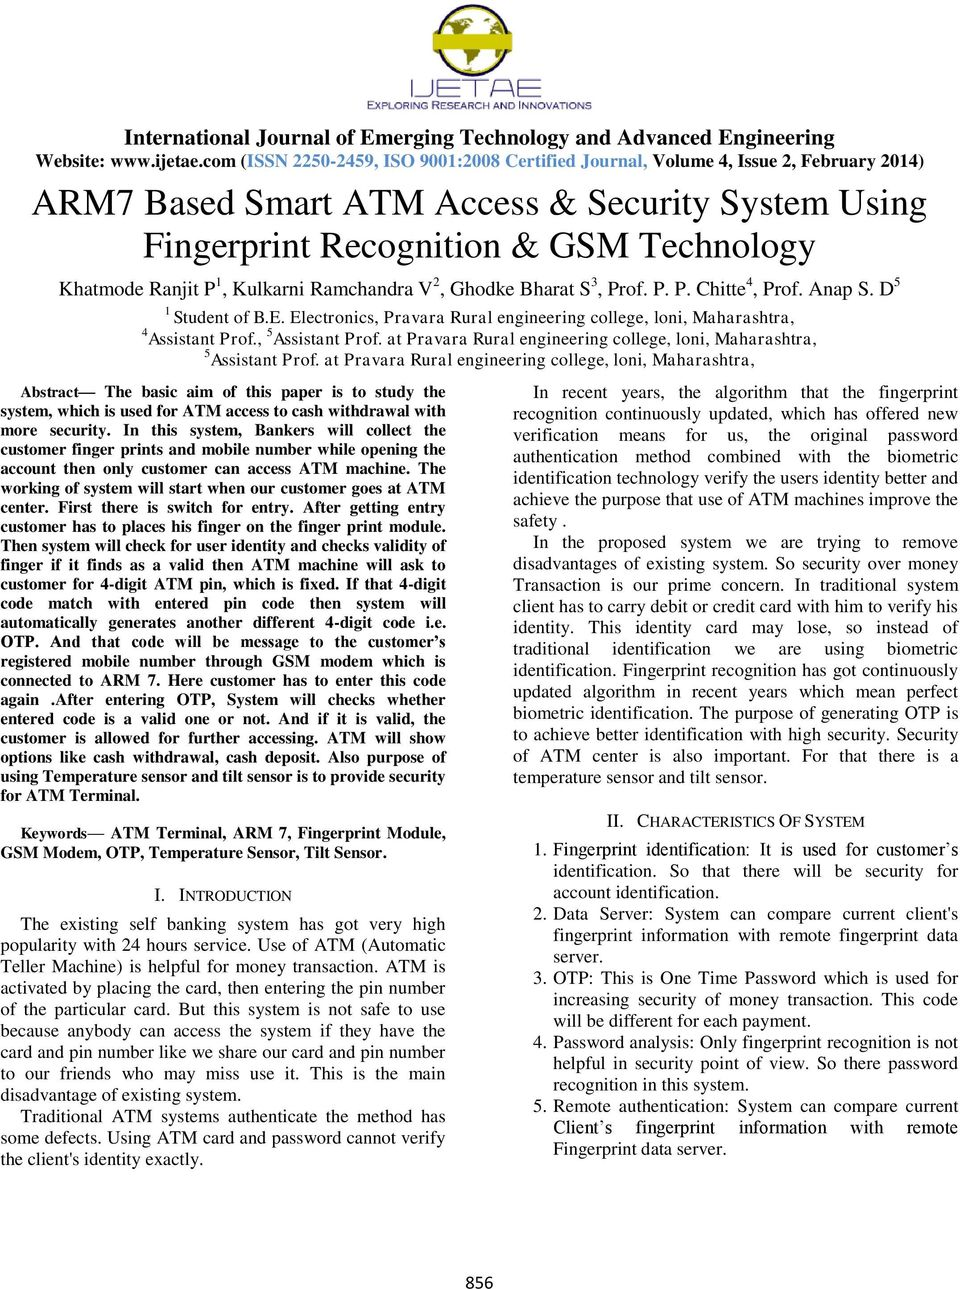 at Pravara Rural engineering college, loni, Maharashtra, Abstract The basic aim of this paper is to study the system, which is used for ATM access to cash withdrawal with more security.